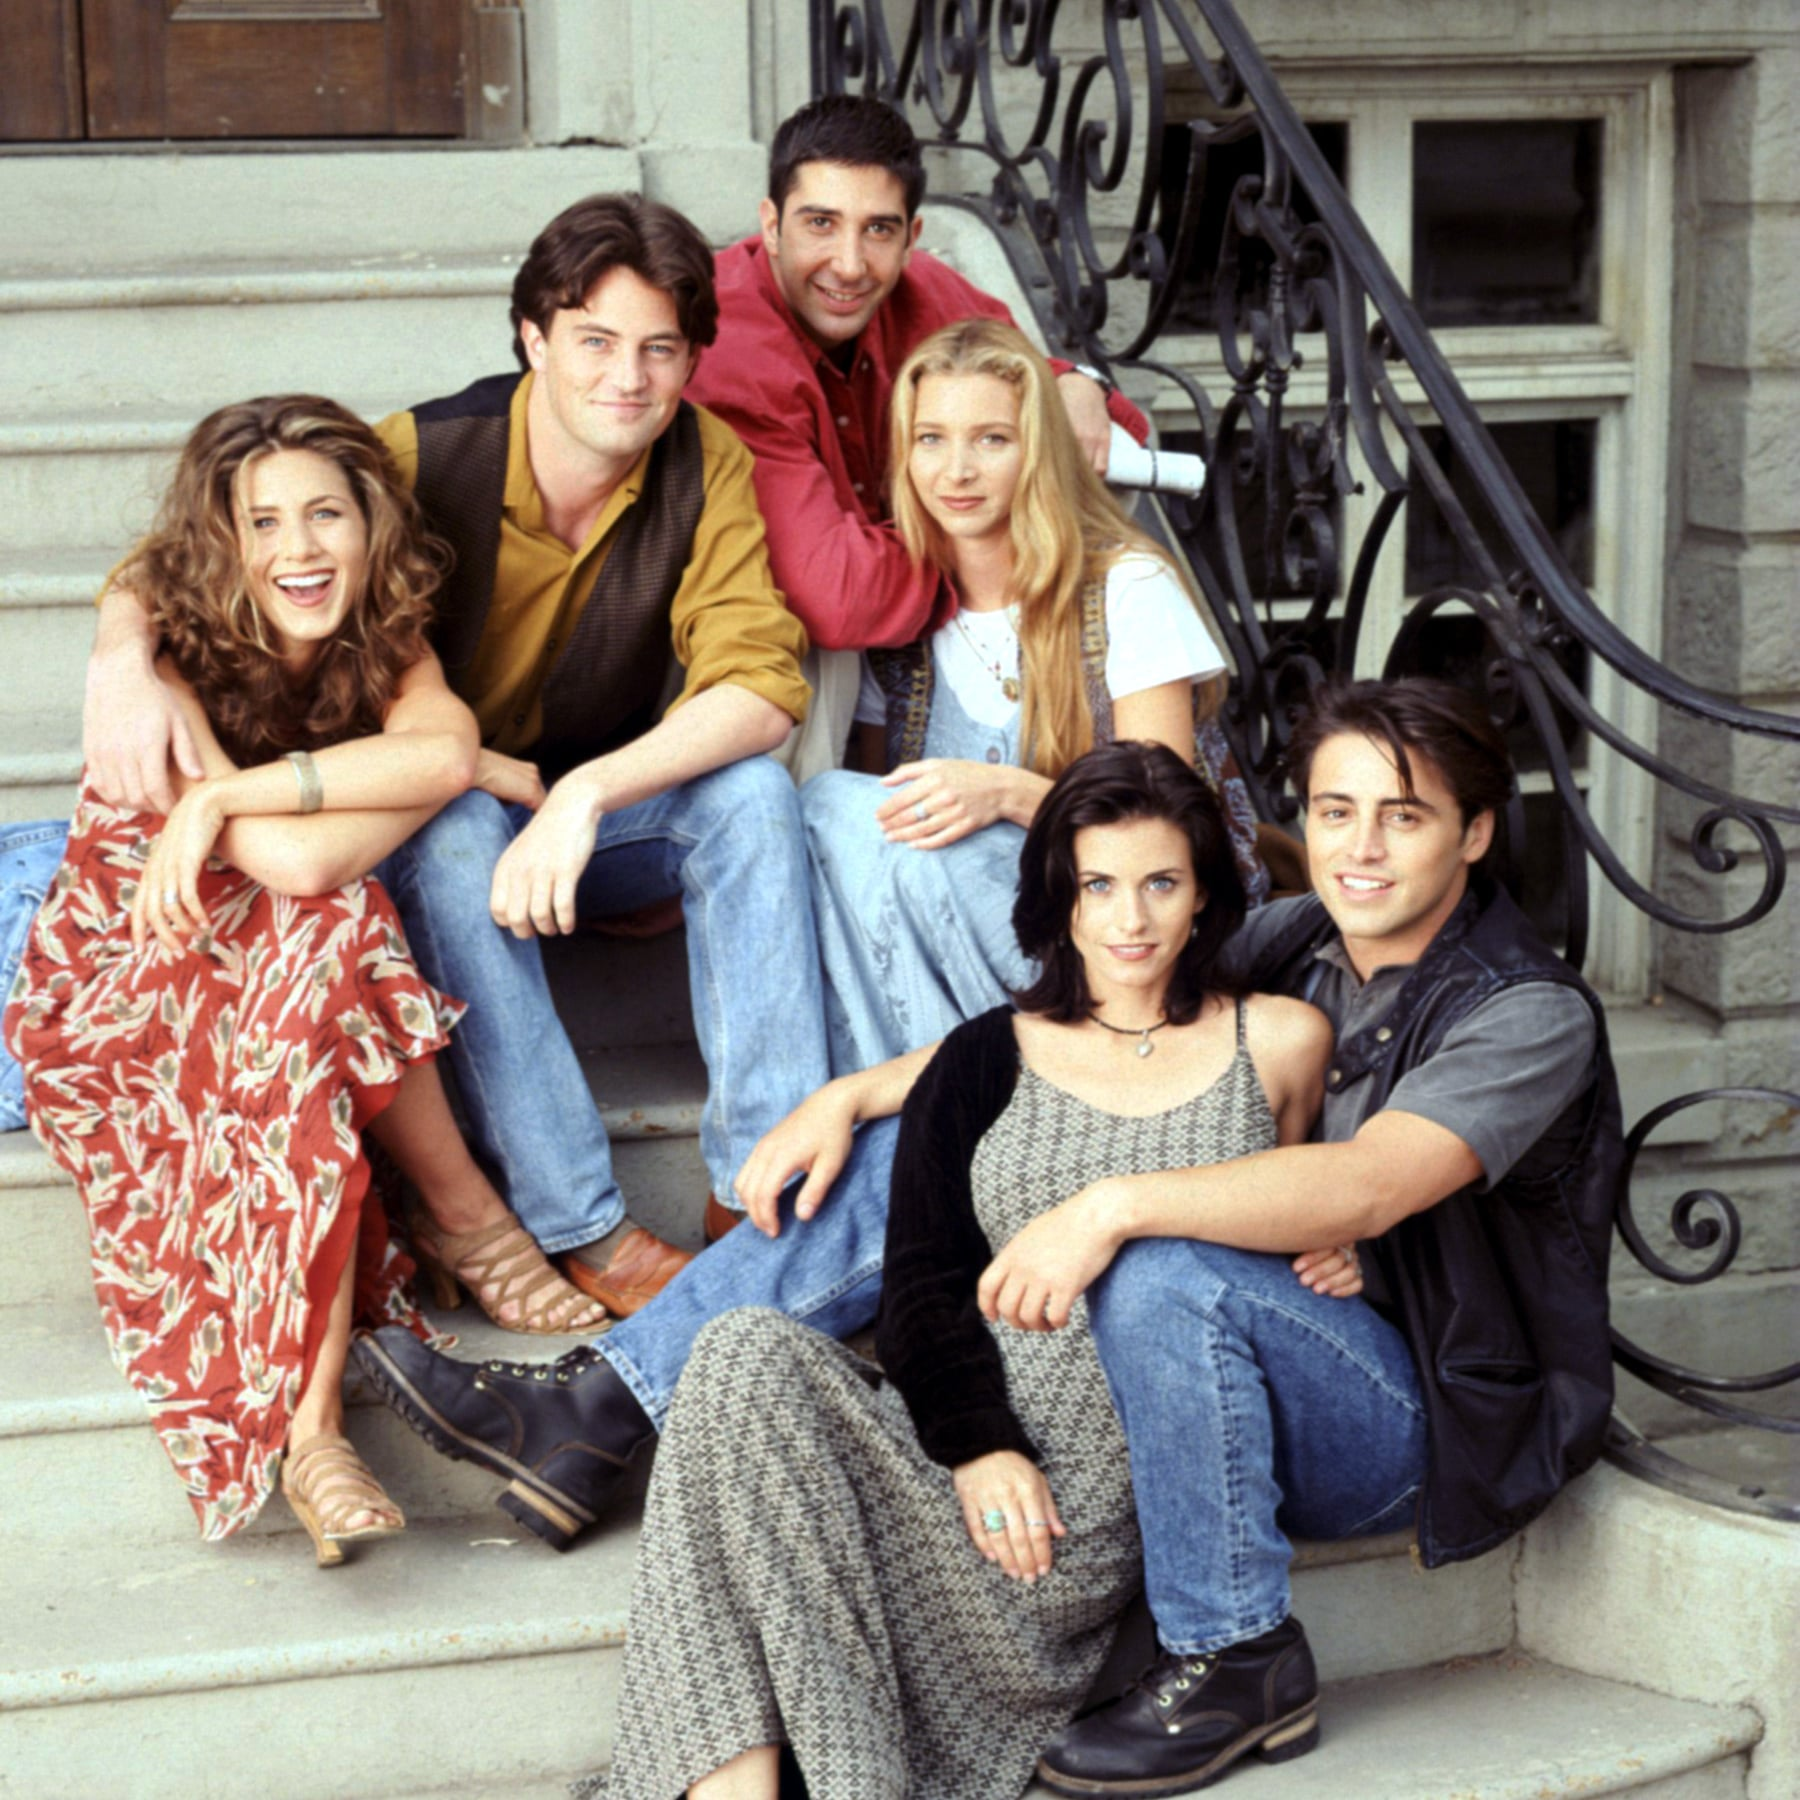 how-old-were-friends-cast-when-show-was-filmed